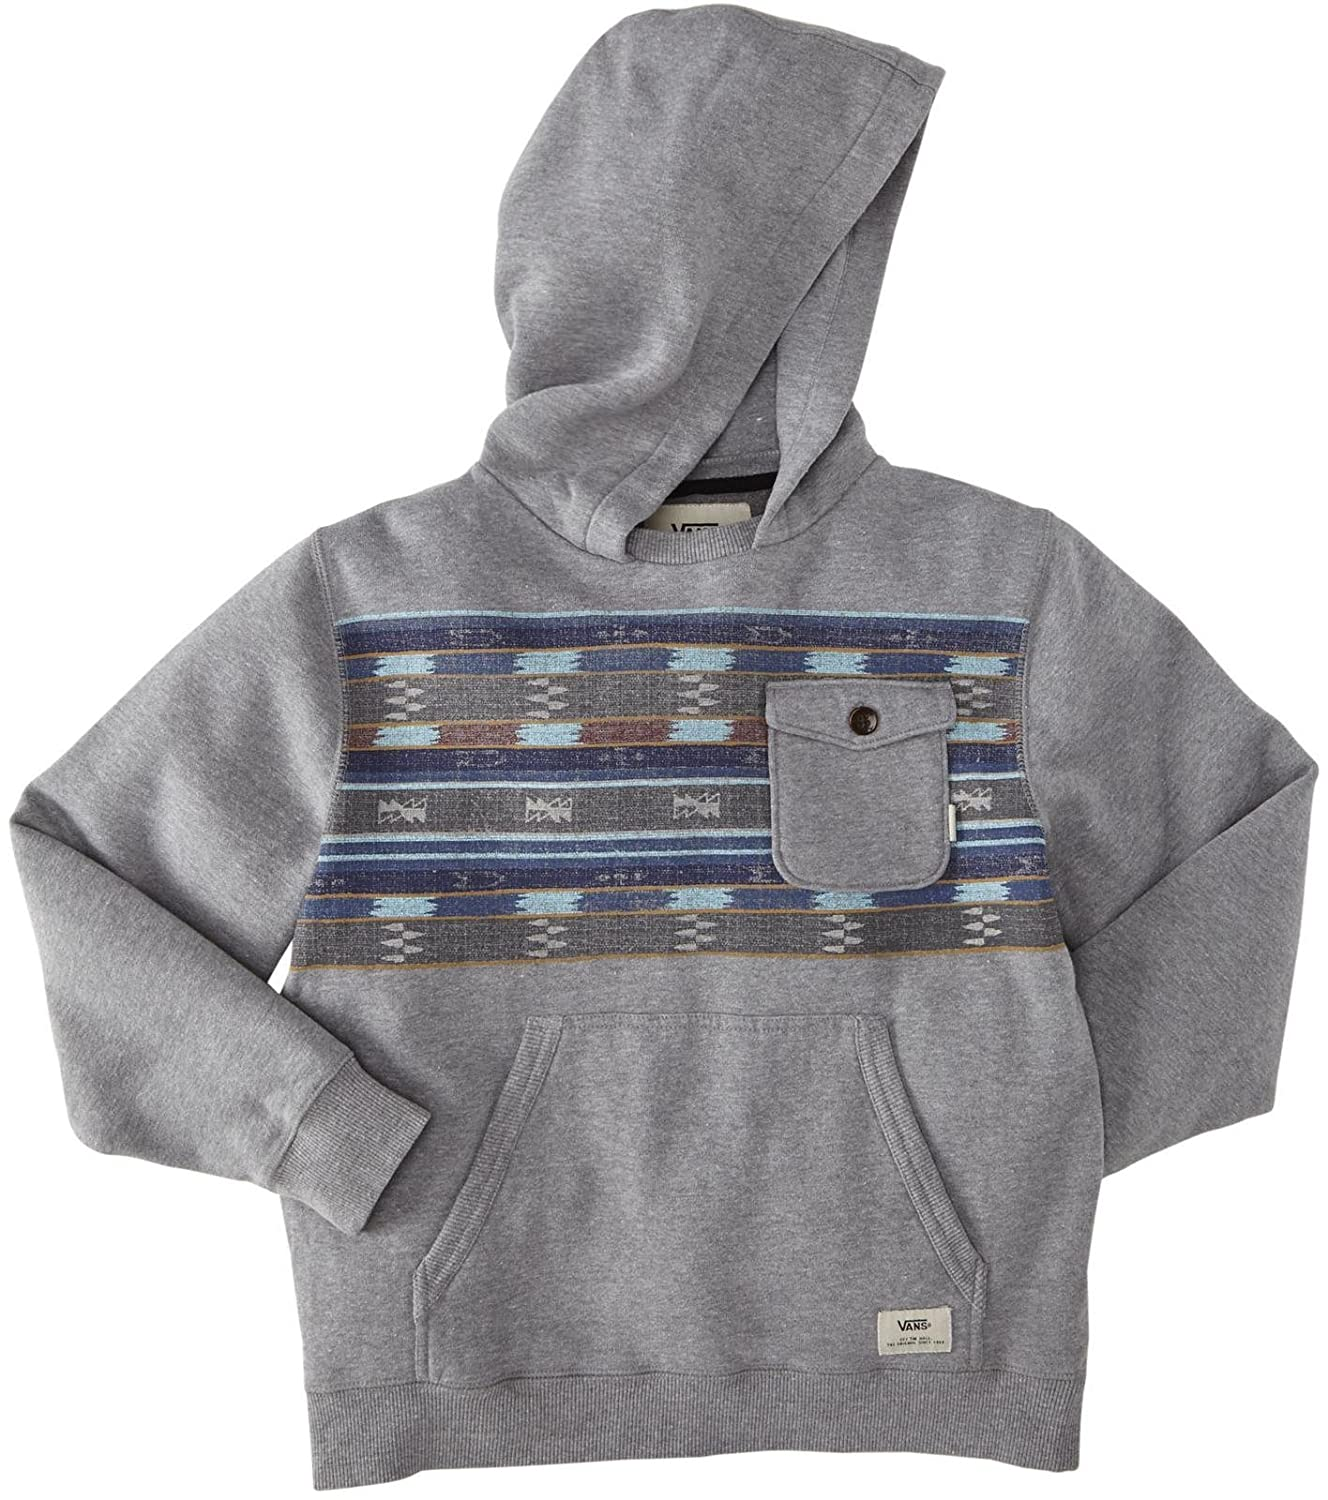 1a25e8675 Vans Big Boys' 40Th Parallel Hoodie (Kid) - Concrete Heather - X-Large:  Amazon.in: Clothing & Accessories